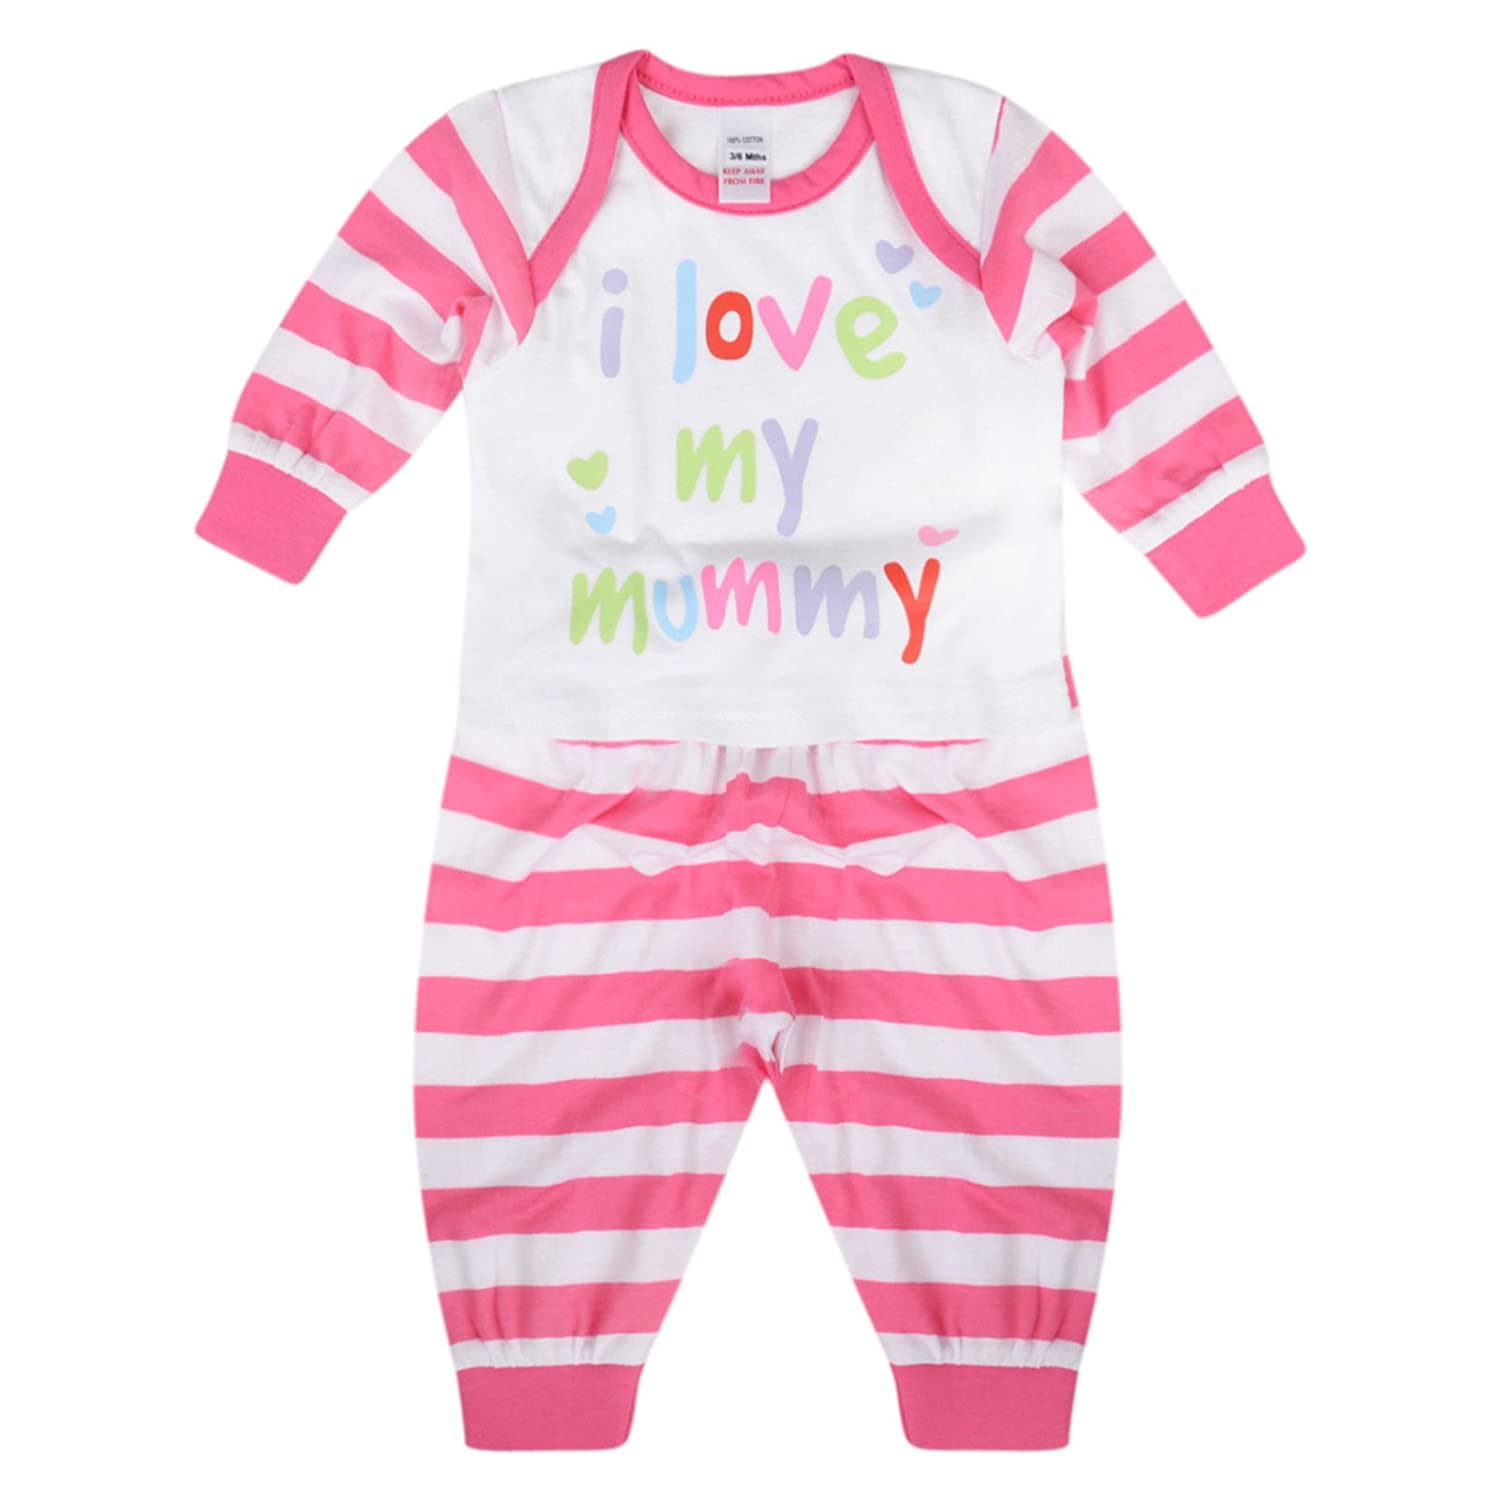 Paradise Baby Girls Pyjama Sets I Love My Mummy I Love My Daddy Cotton Long PJ Set